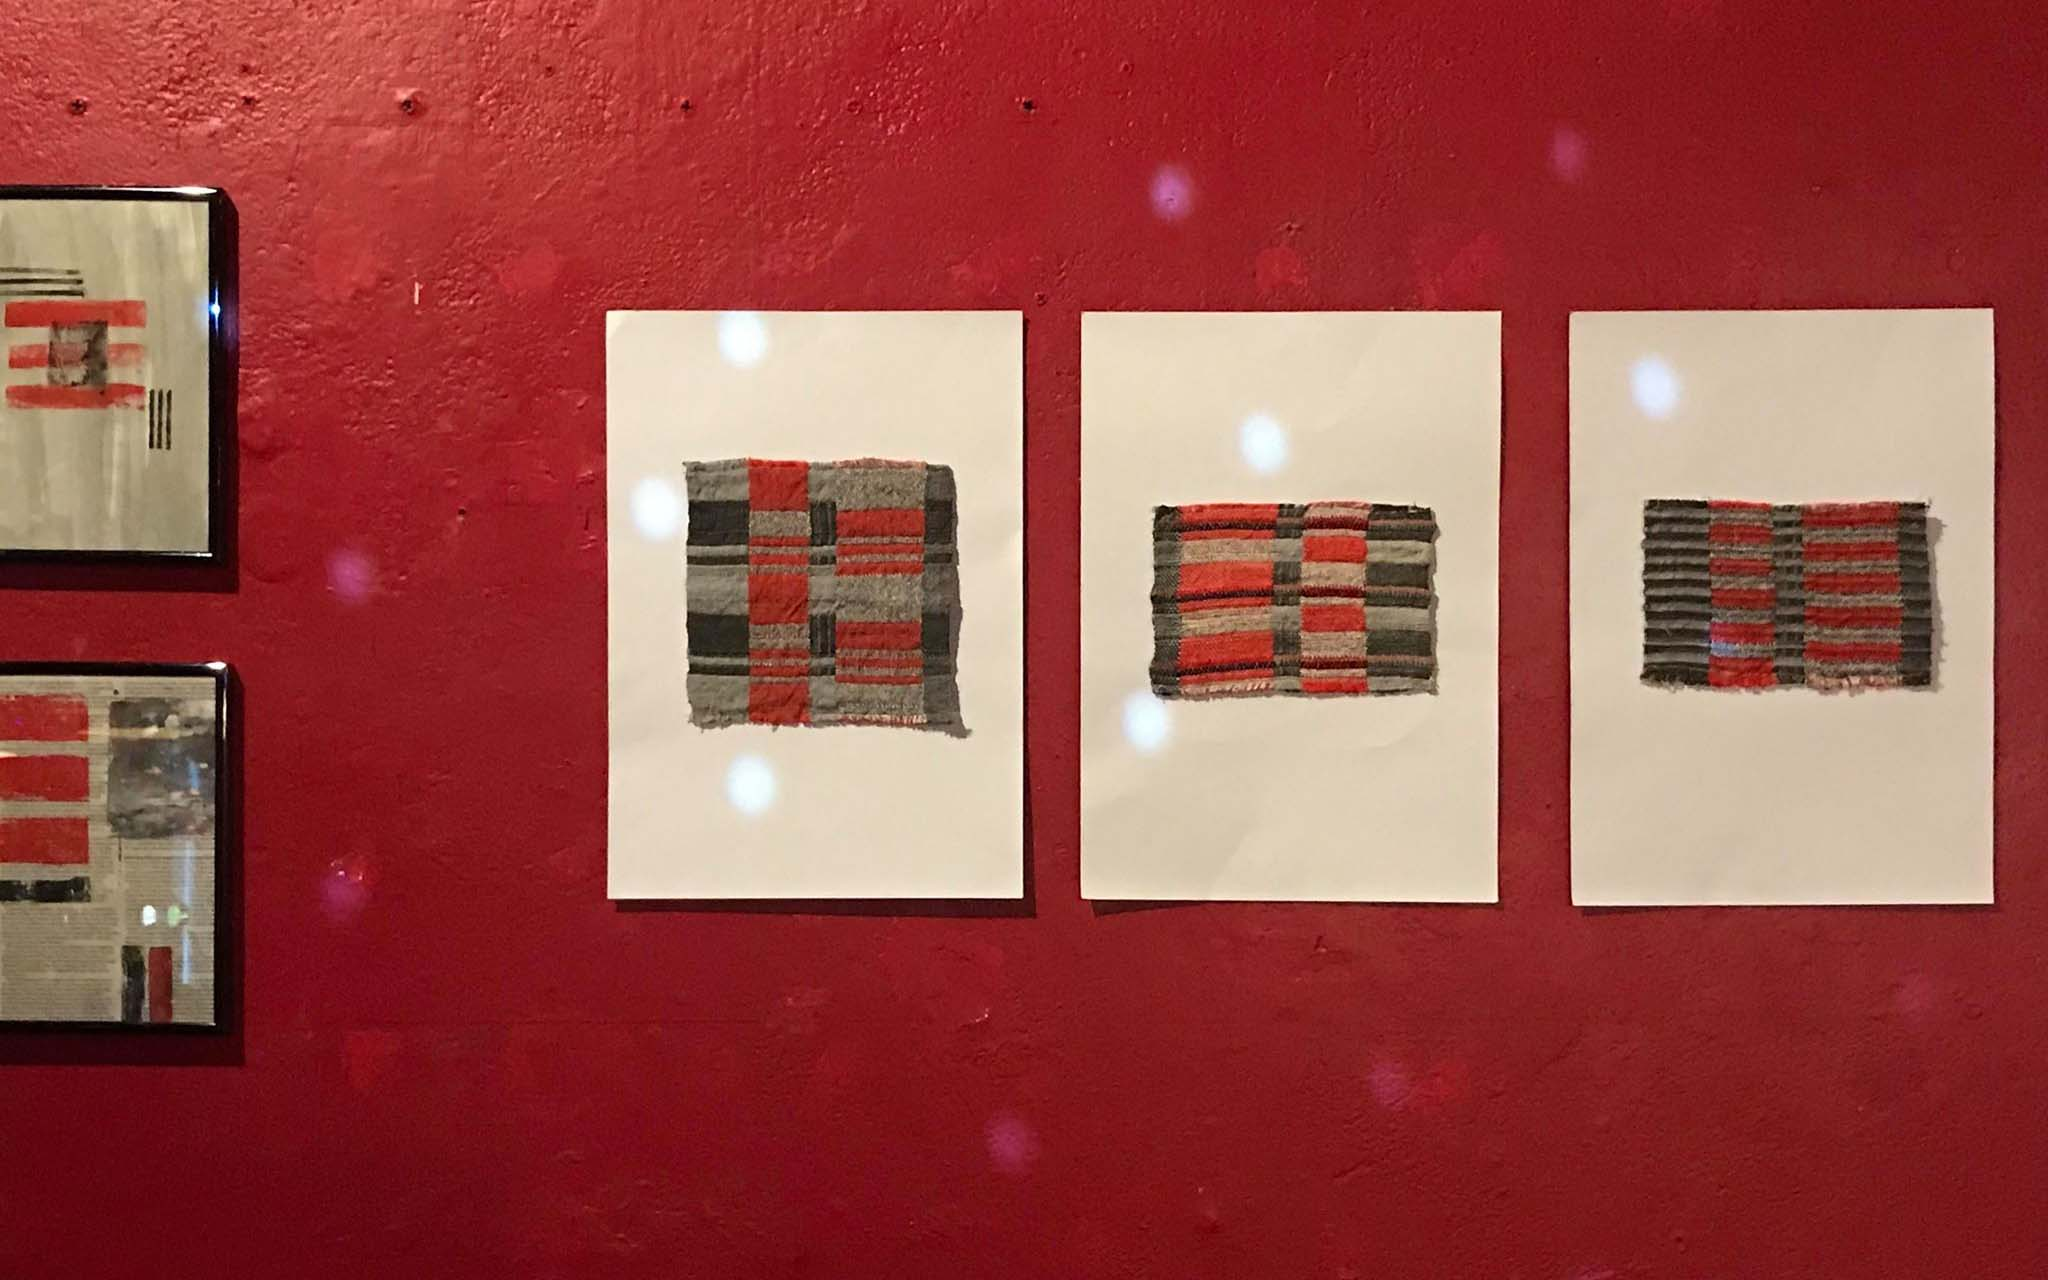 A series of three textile prints on a red wall